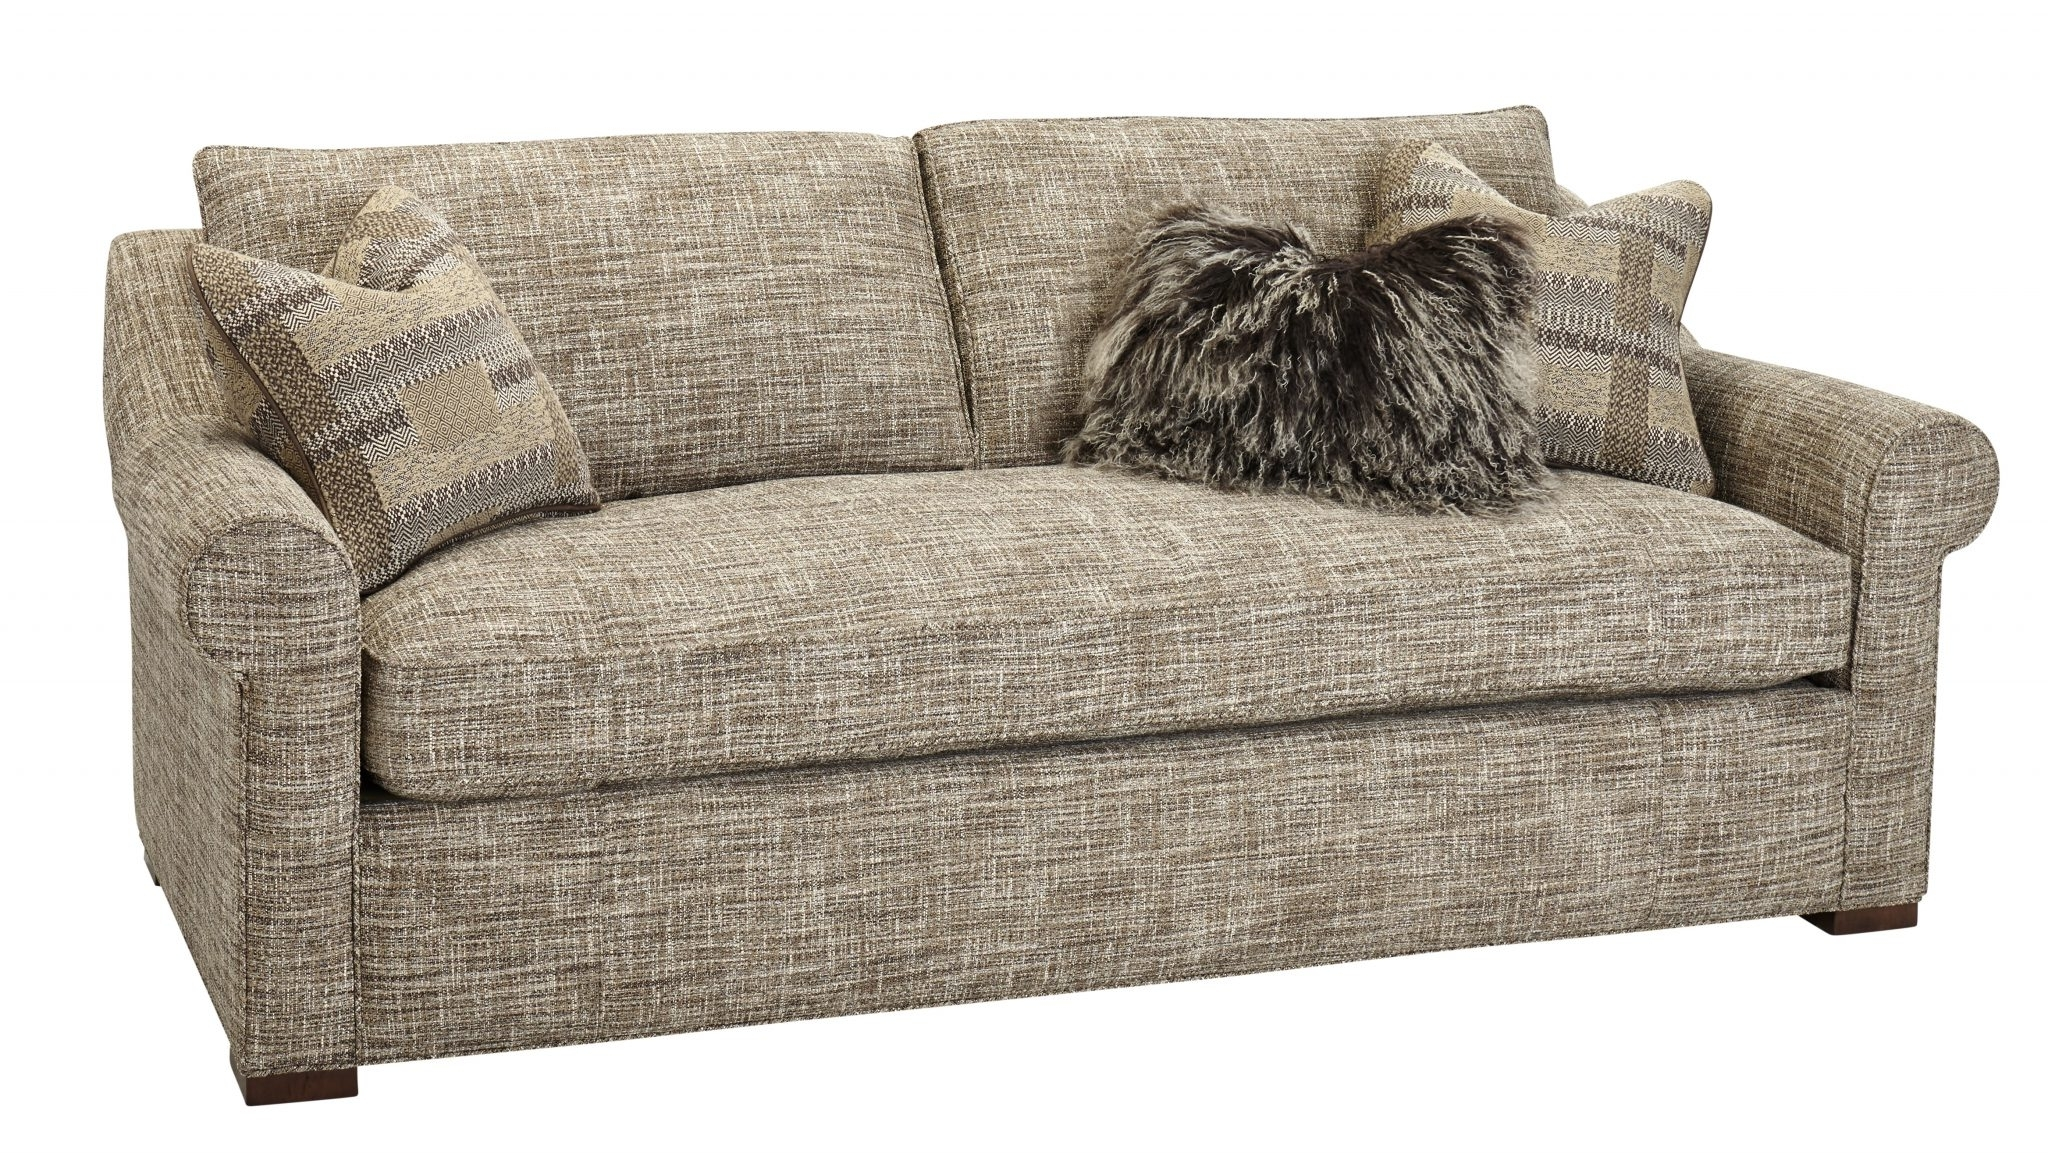 Trendy One Cushion Sofas – Massoud Furniture With Regard To One Cushion Sofas (View 20 of 20)